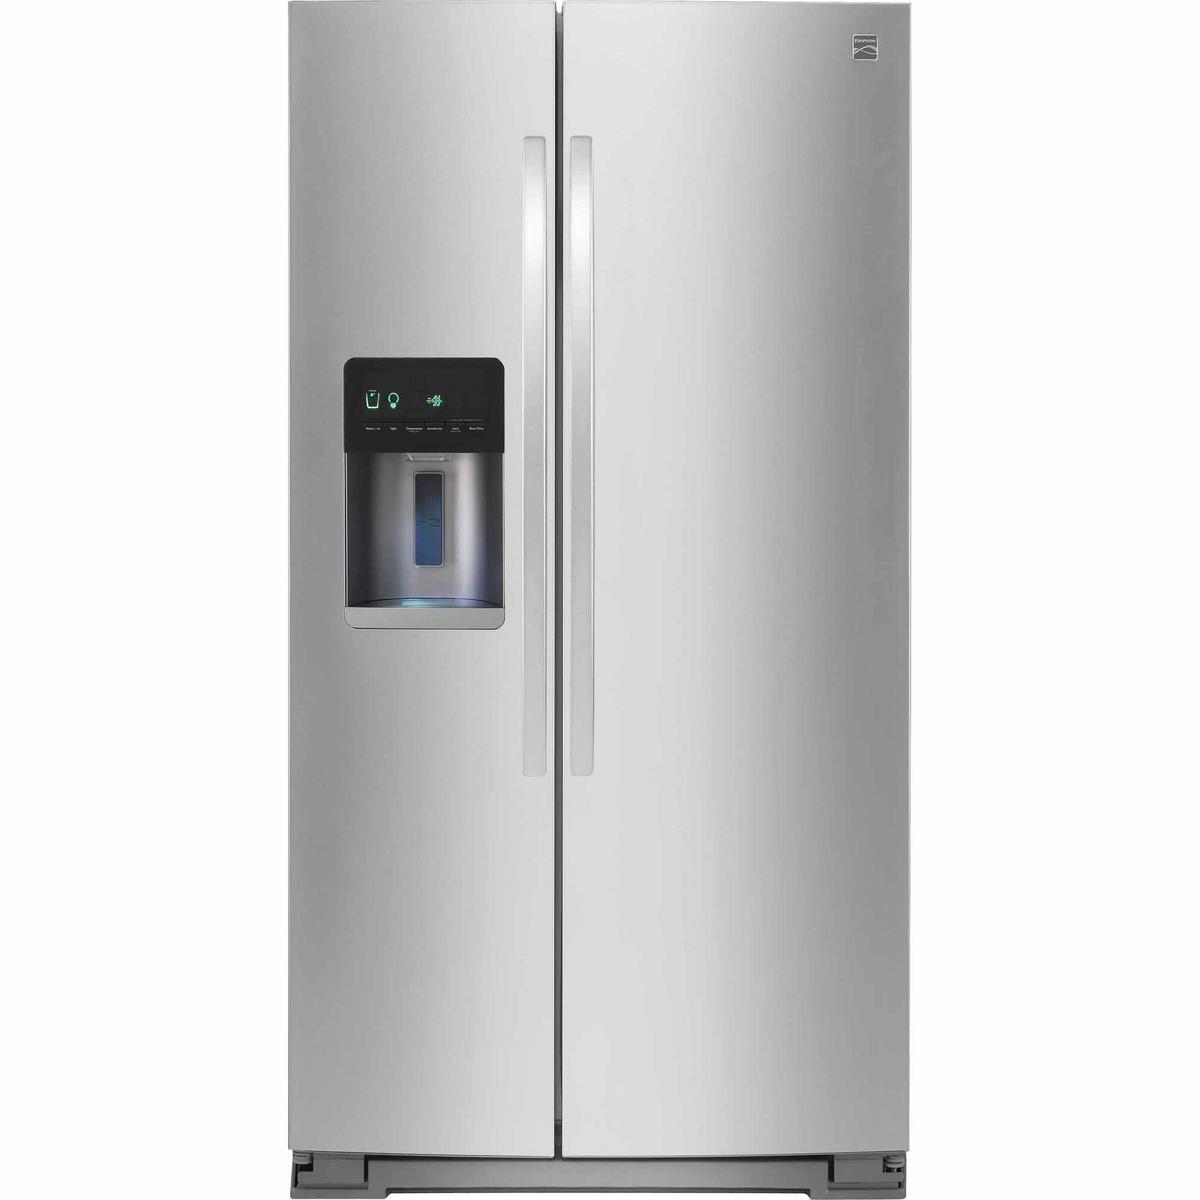 Kenmore 51783 21 cu. ft. Counter-Depth Side-by-Side Refrigerator – Stainless Steel